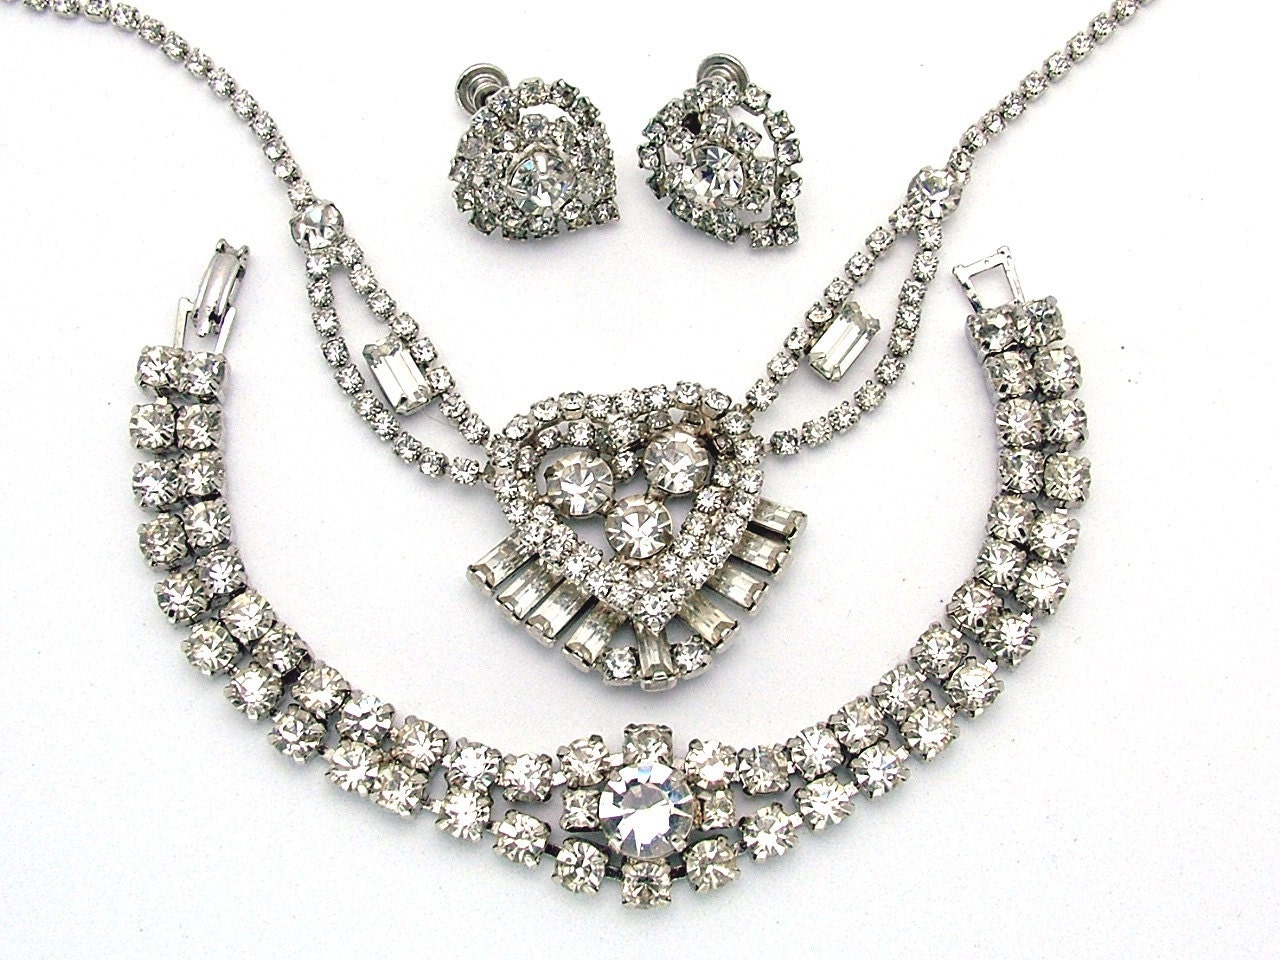 Authentic Vintage Jewelry: Antique, Estate Jewelry